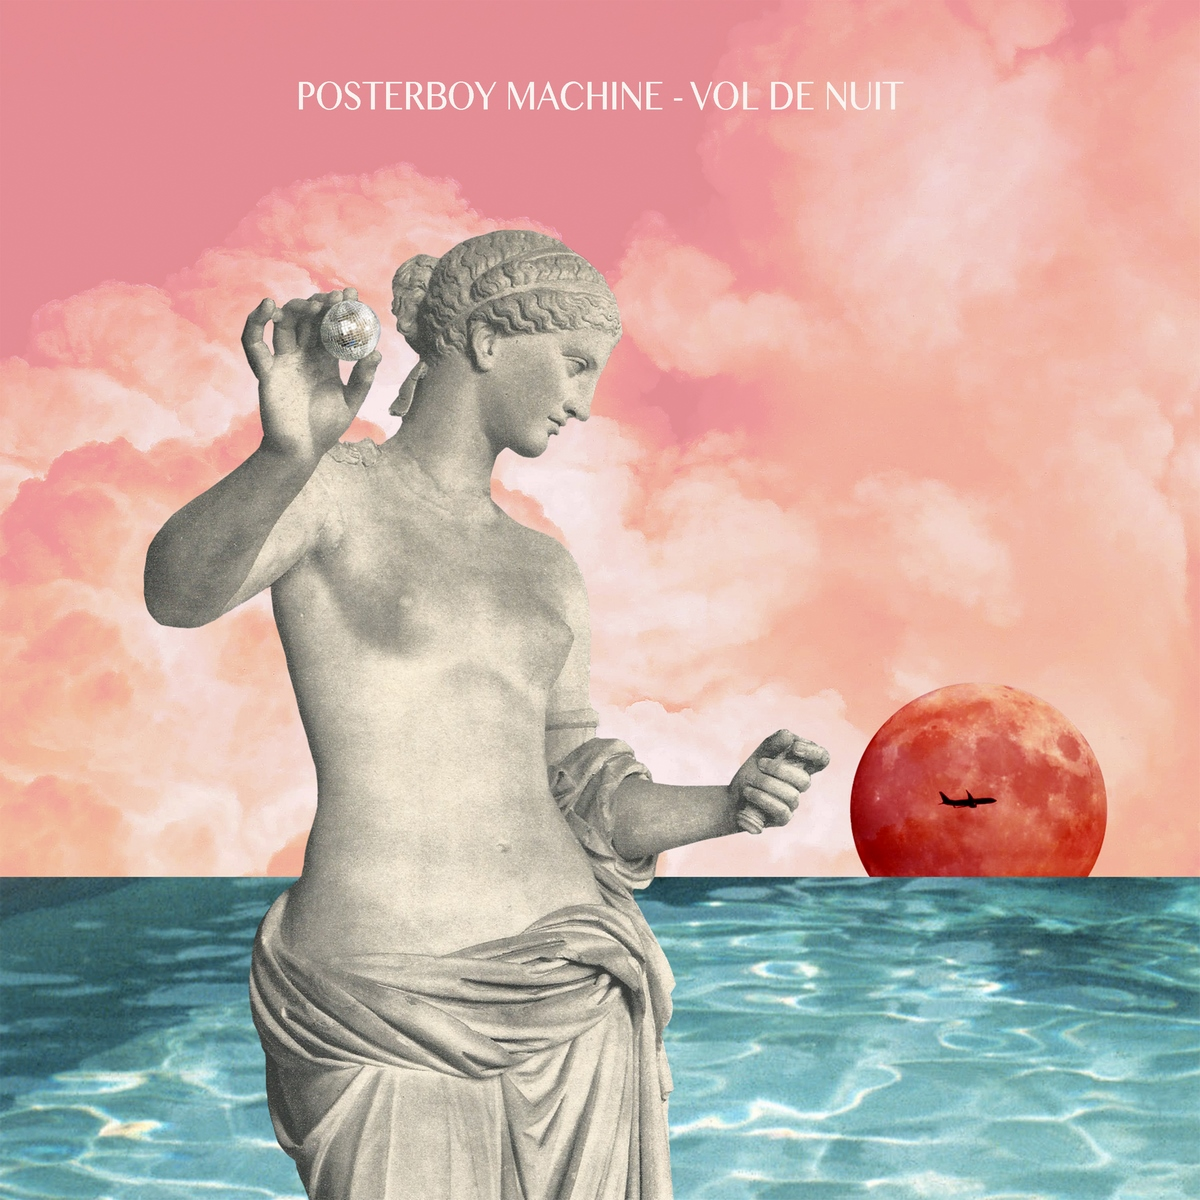 Posterboy Machine - Vol de Nuit